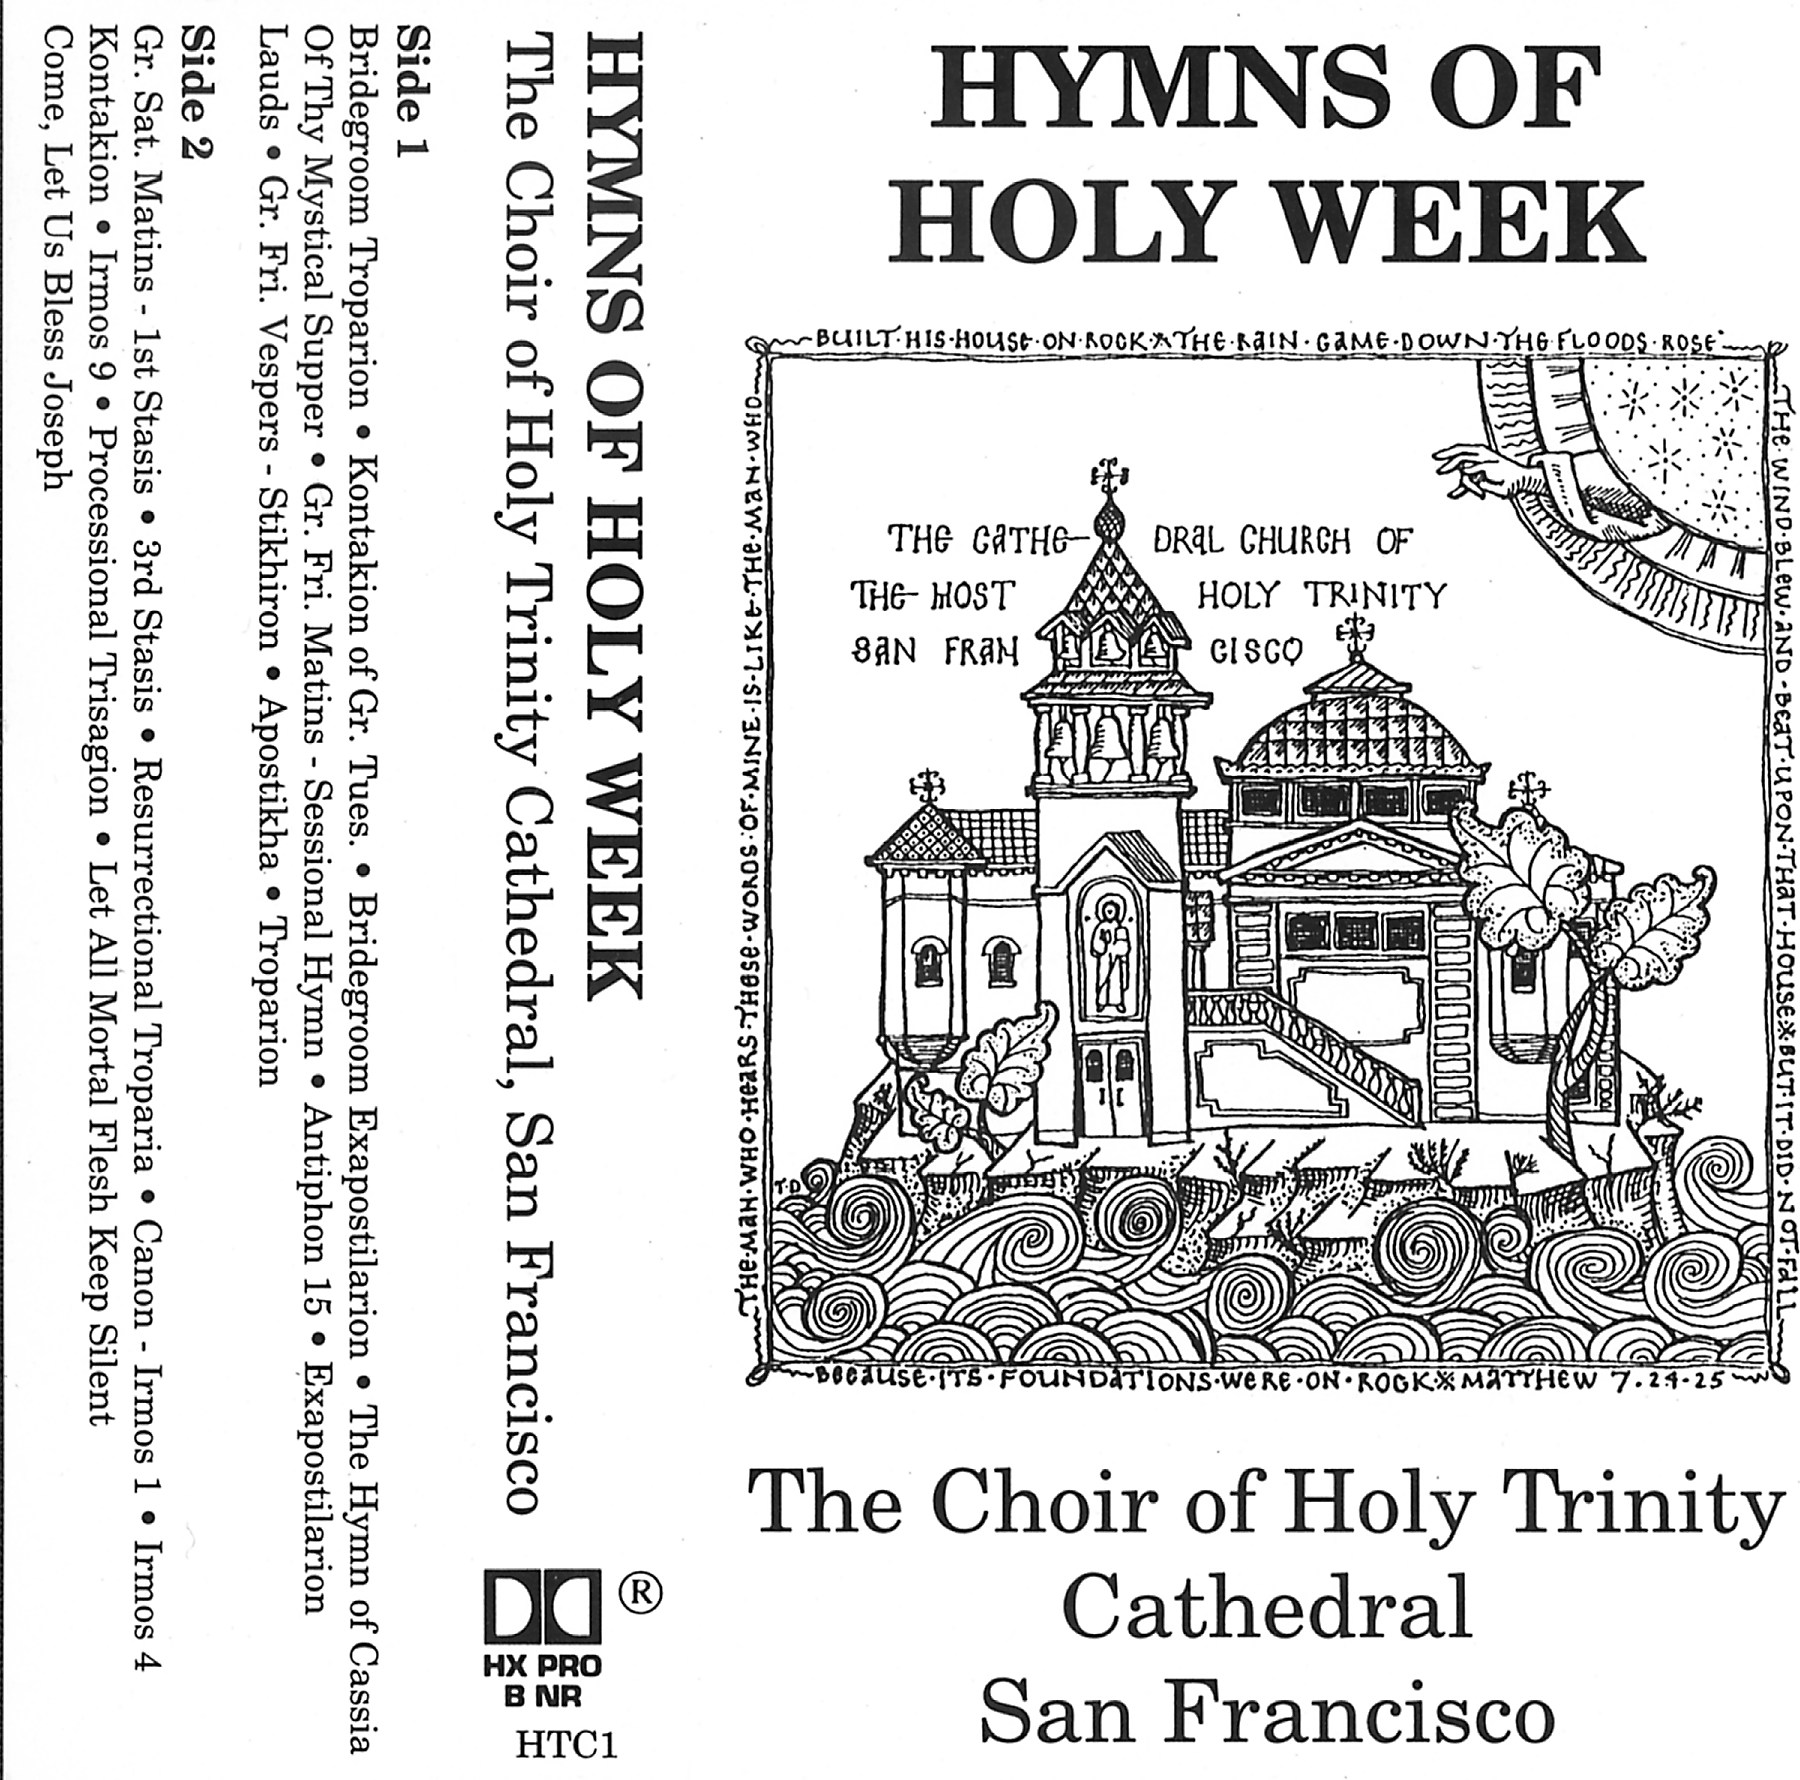 HTC: Hymns of Holy Week